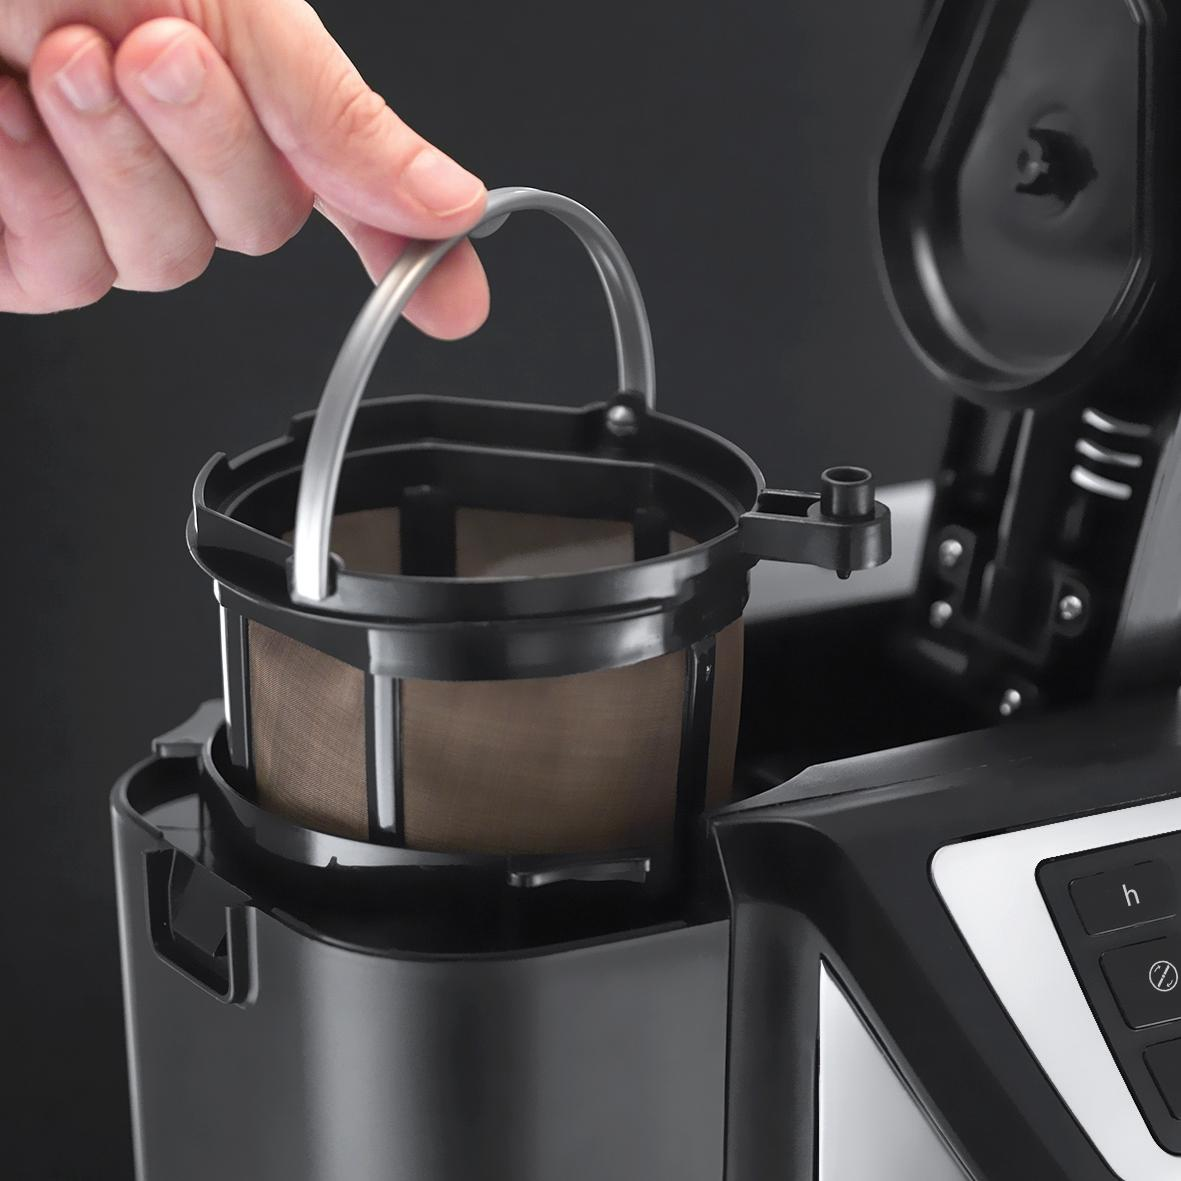 Quietest Coffee Maker With Grinder : Russell Hobbs 22000 Chester Grind and Brew Coffee Maker Stainless Steel Black